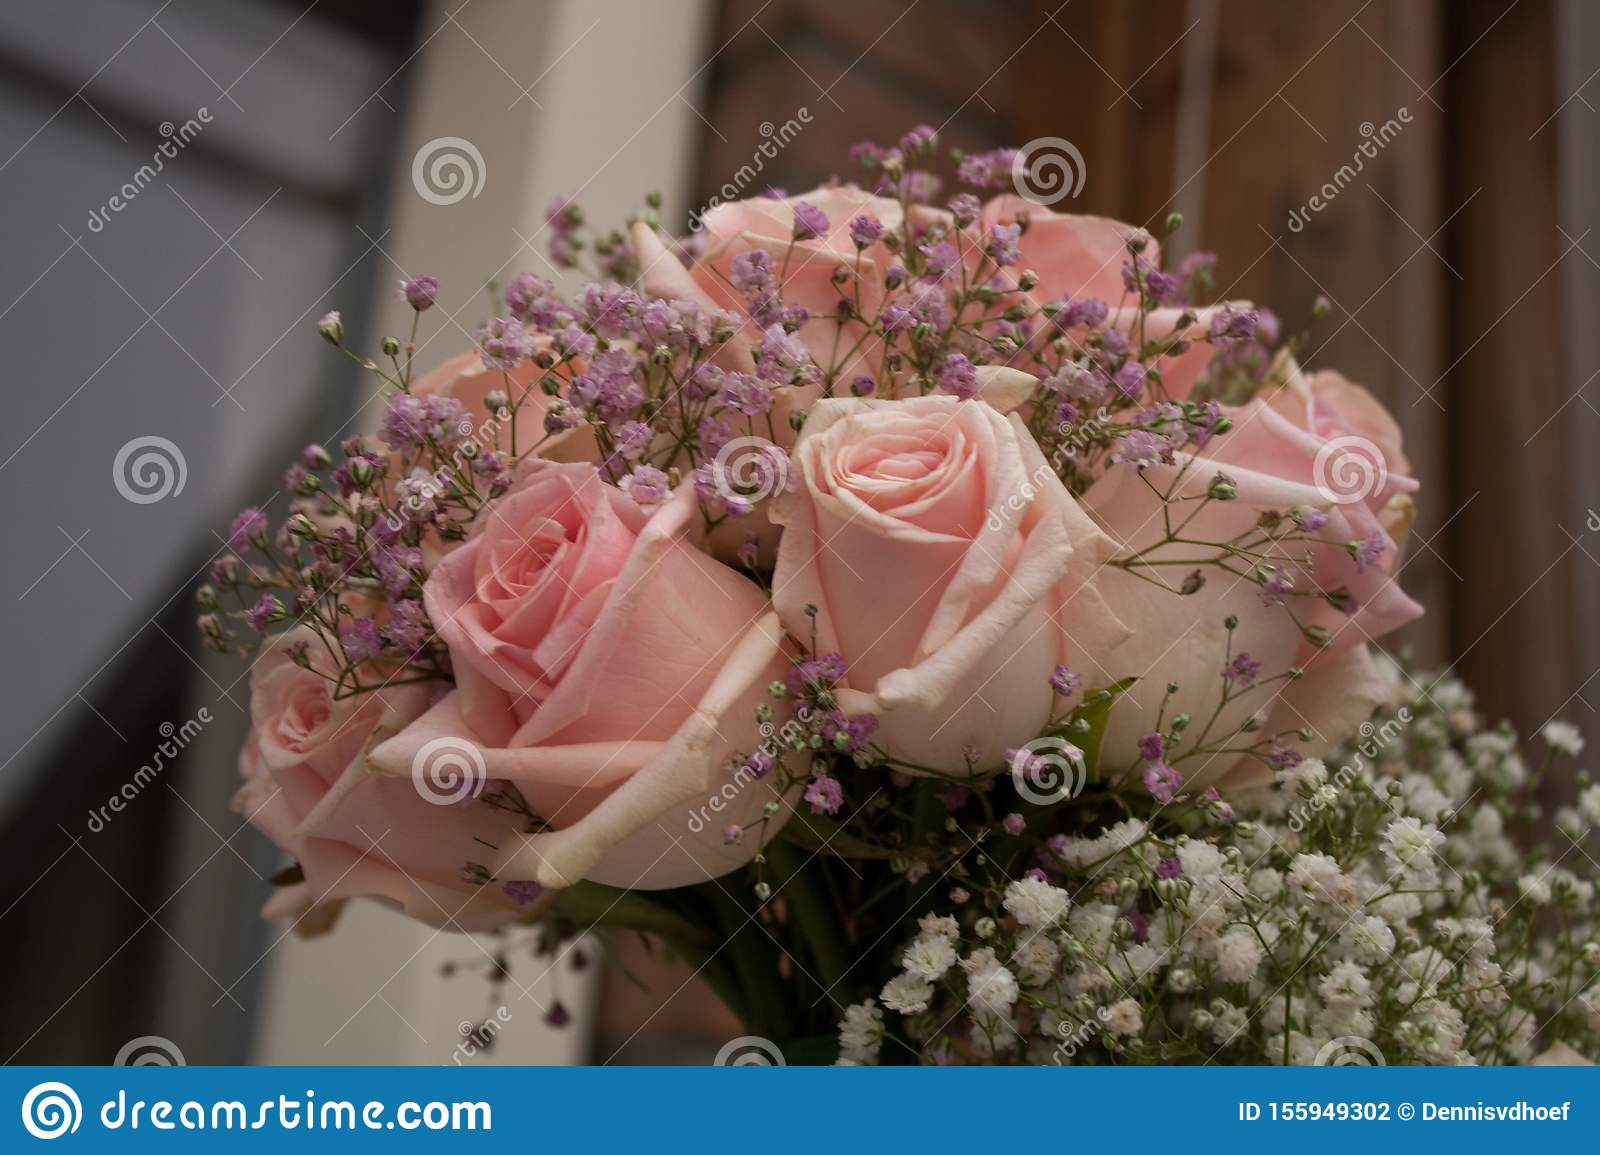 Wedding bouquet with pink roses.